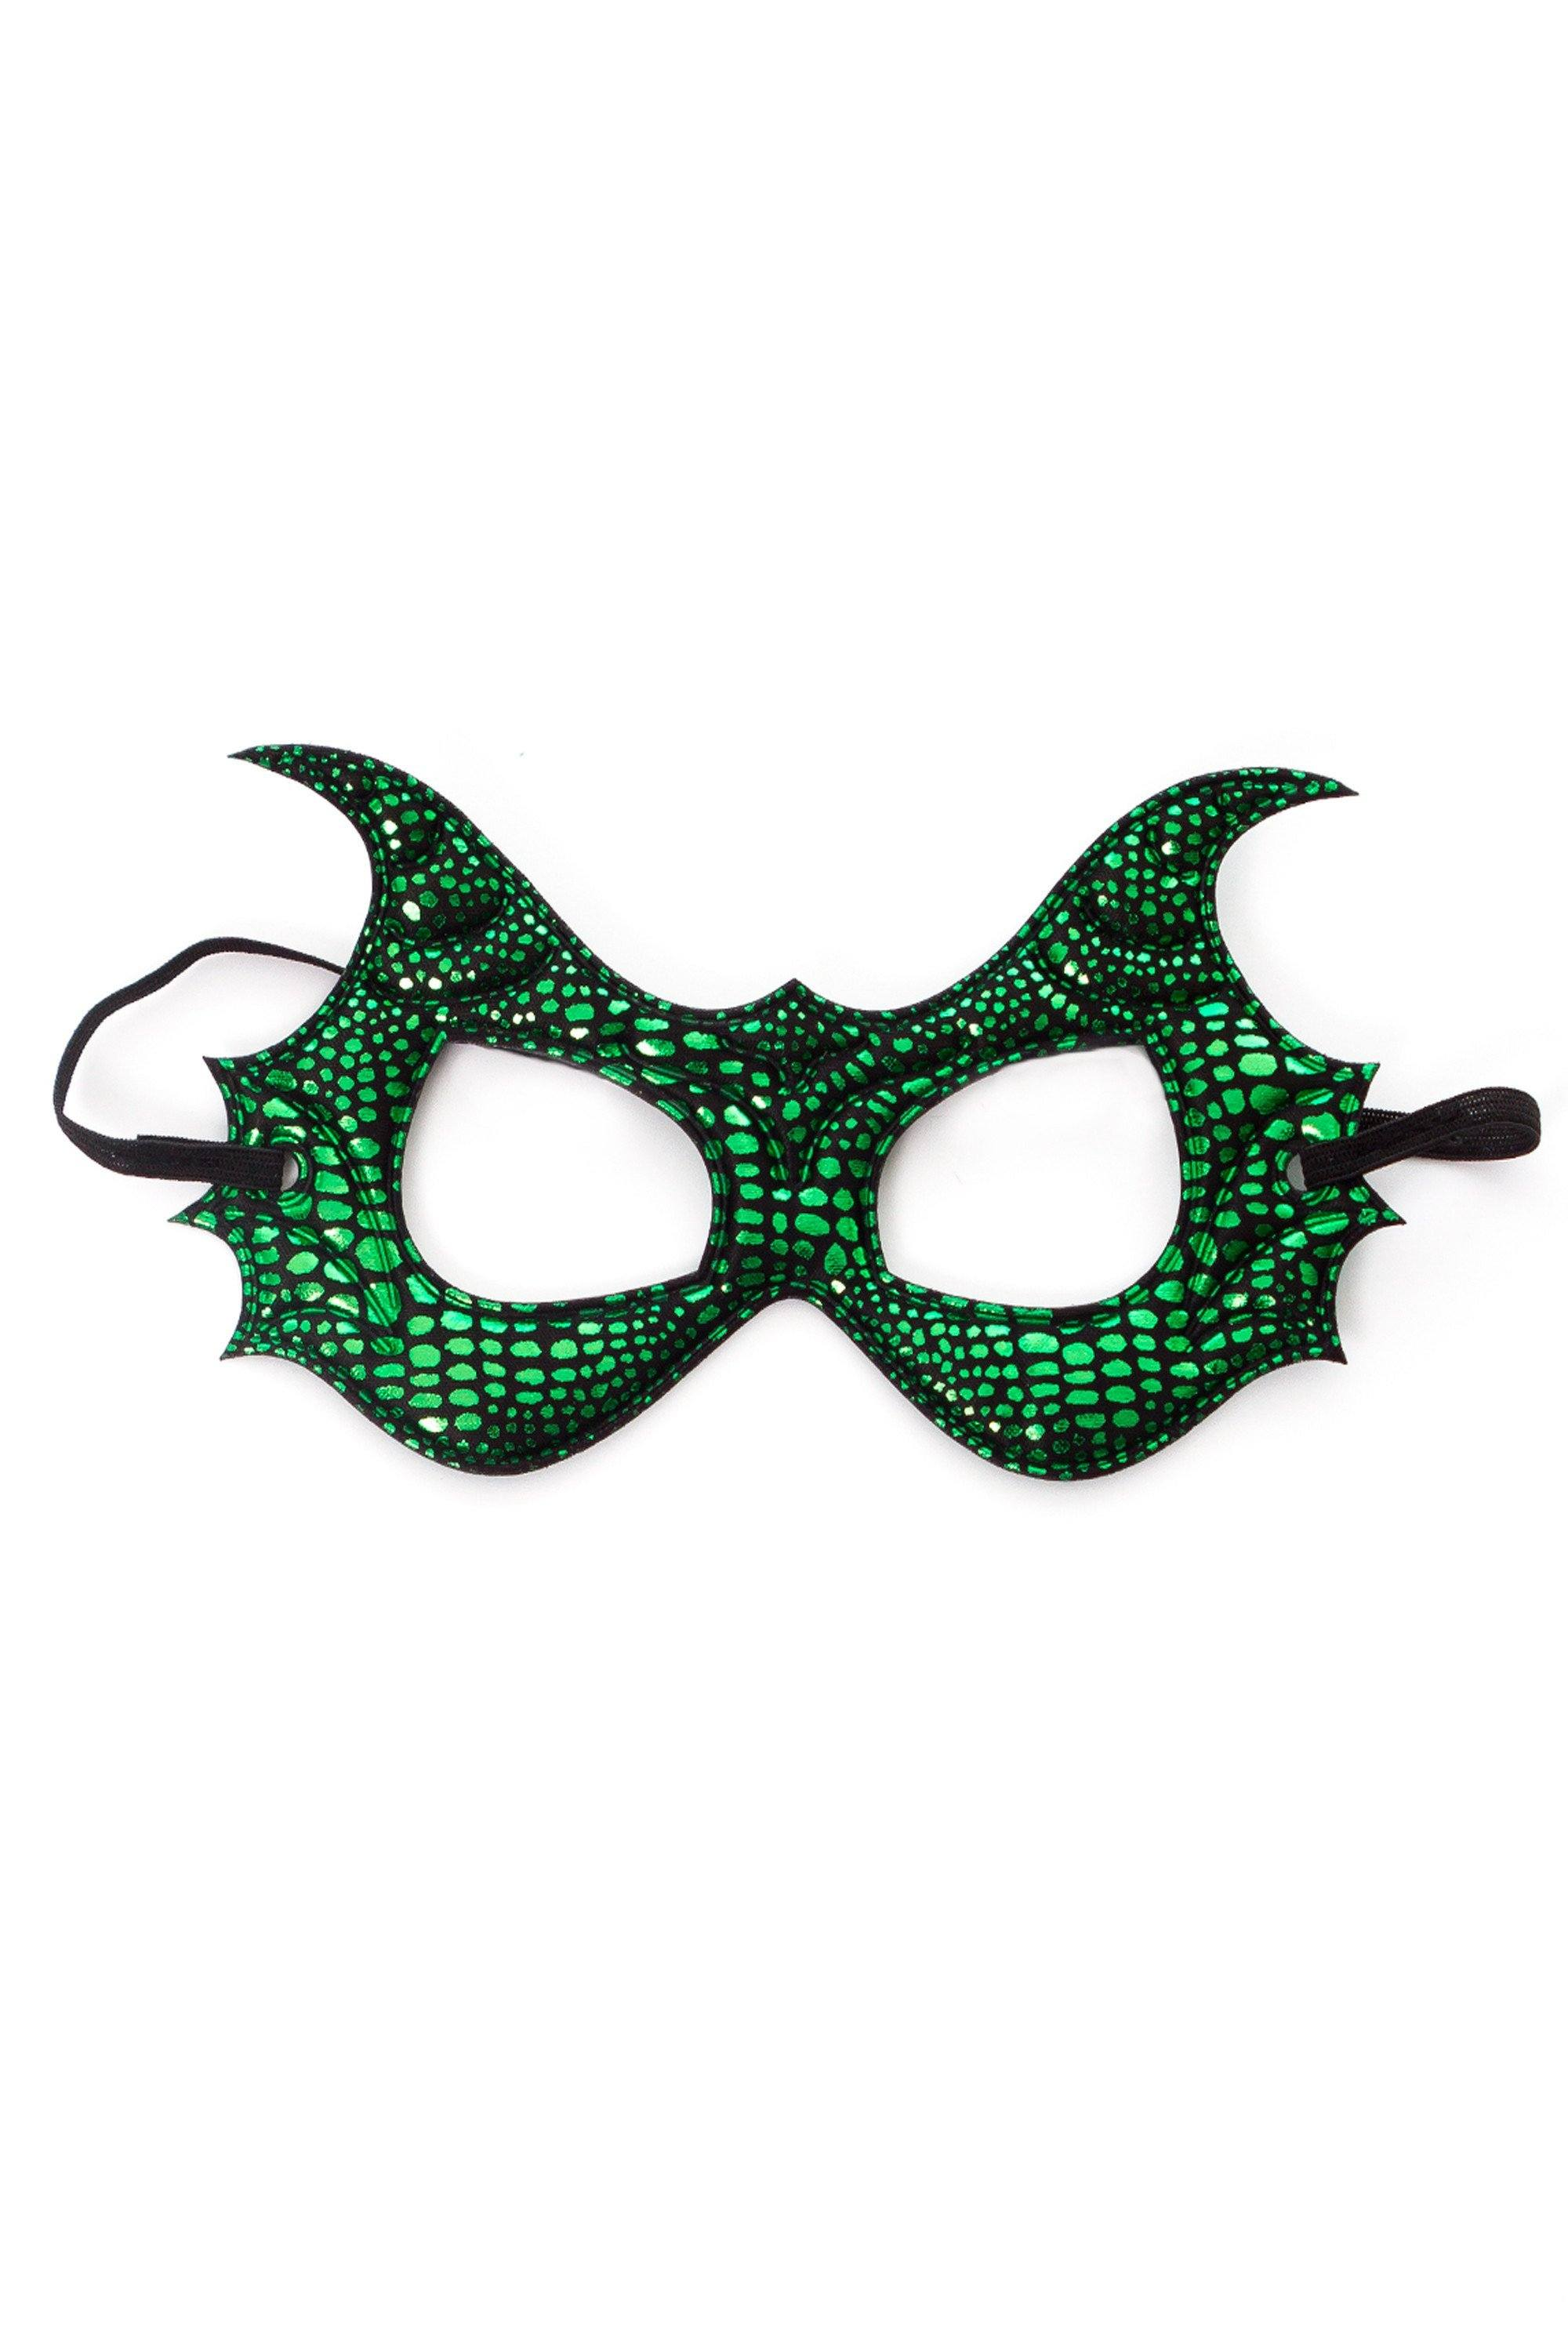 Knight And Adventure Cape Sets - Green Dragon Wing & Mask Set